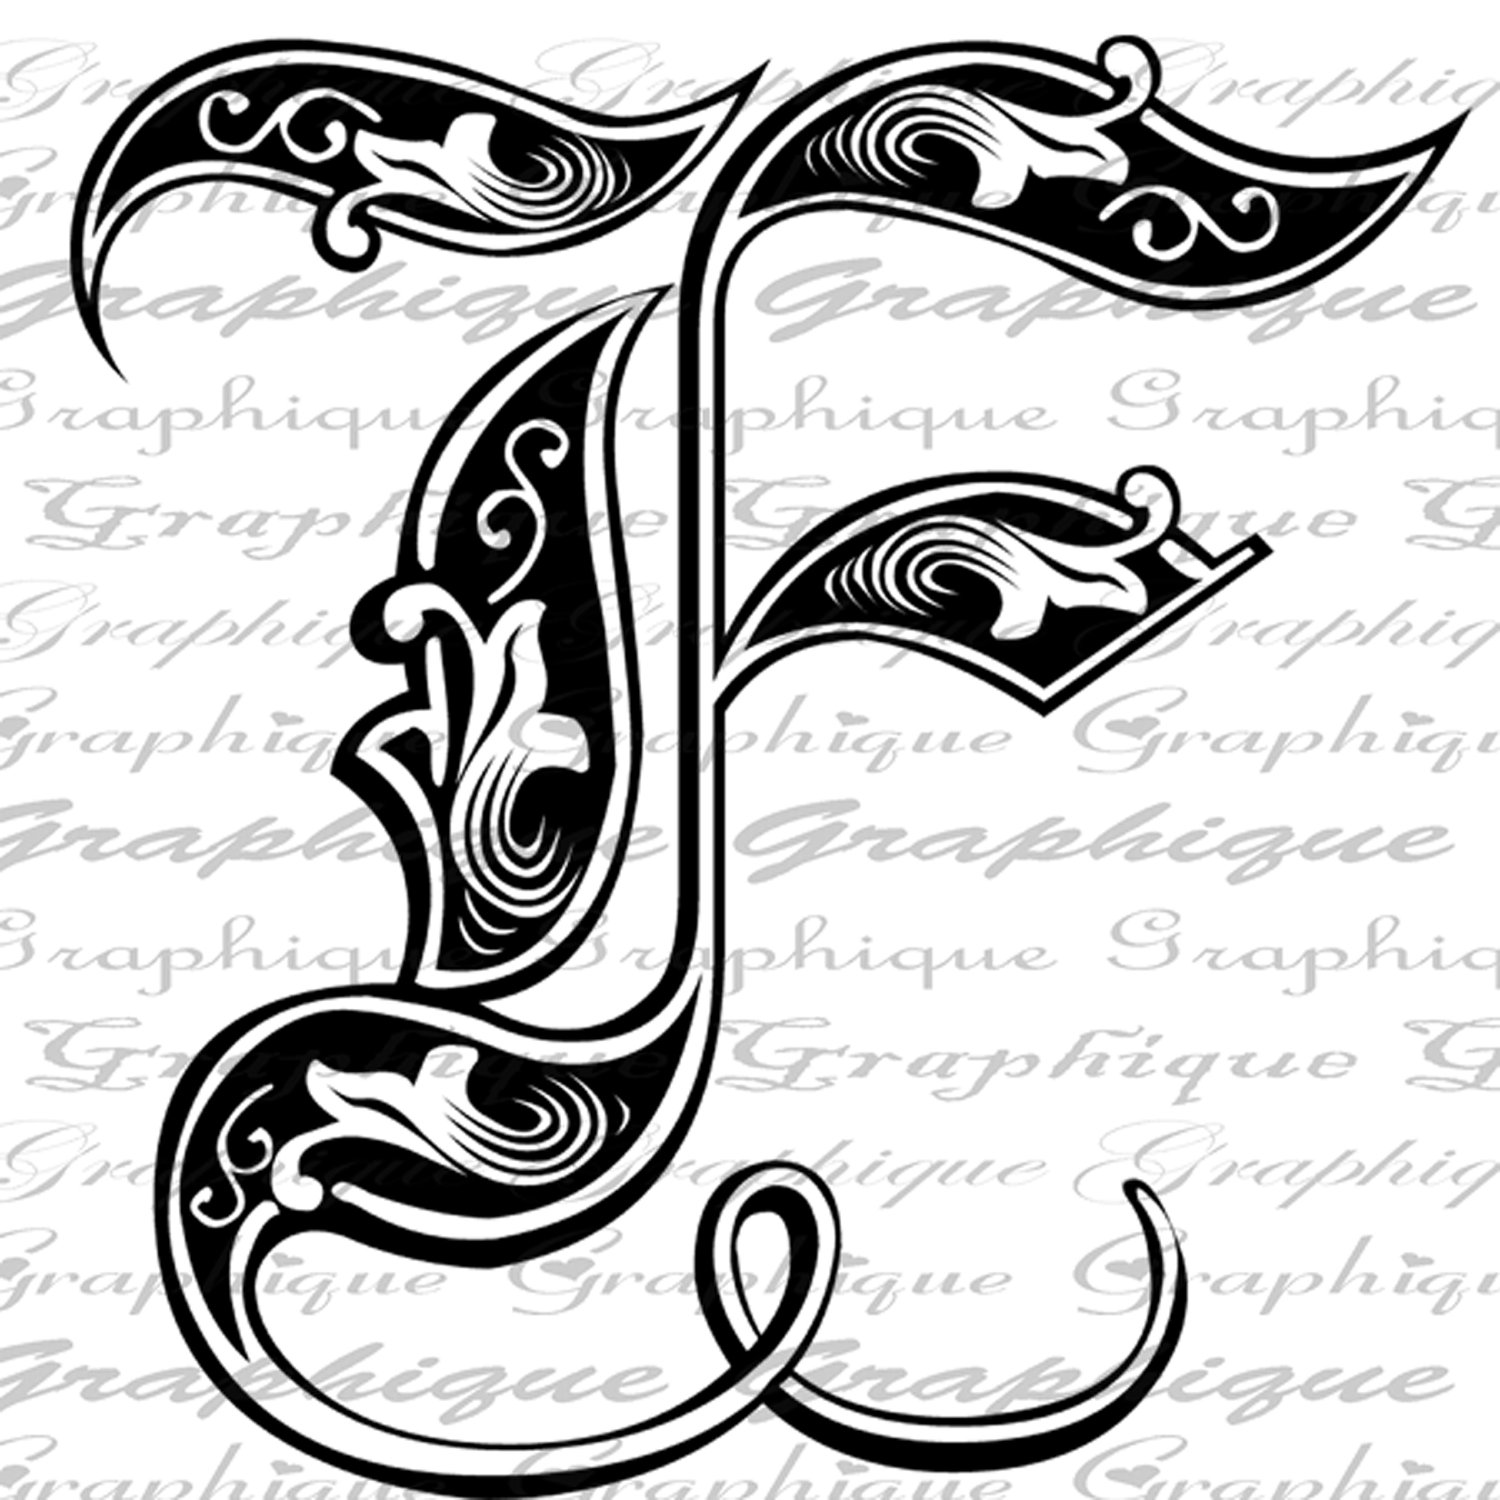 LETTER Initial F Monogram Old ENGRAVING Style Type Text.